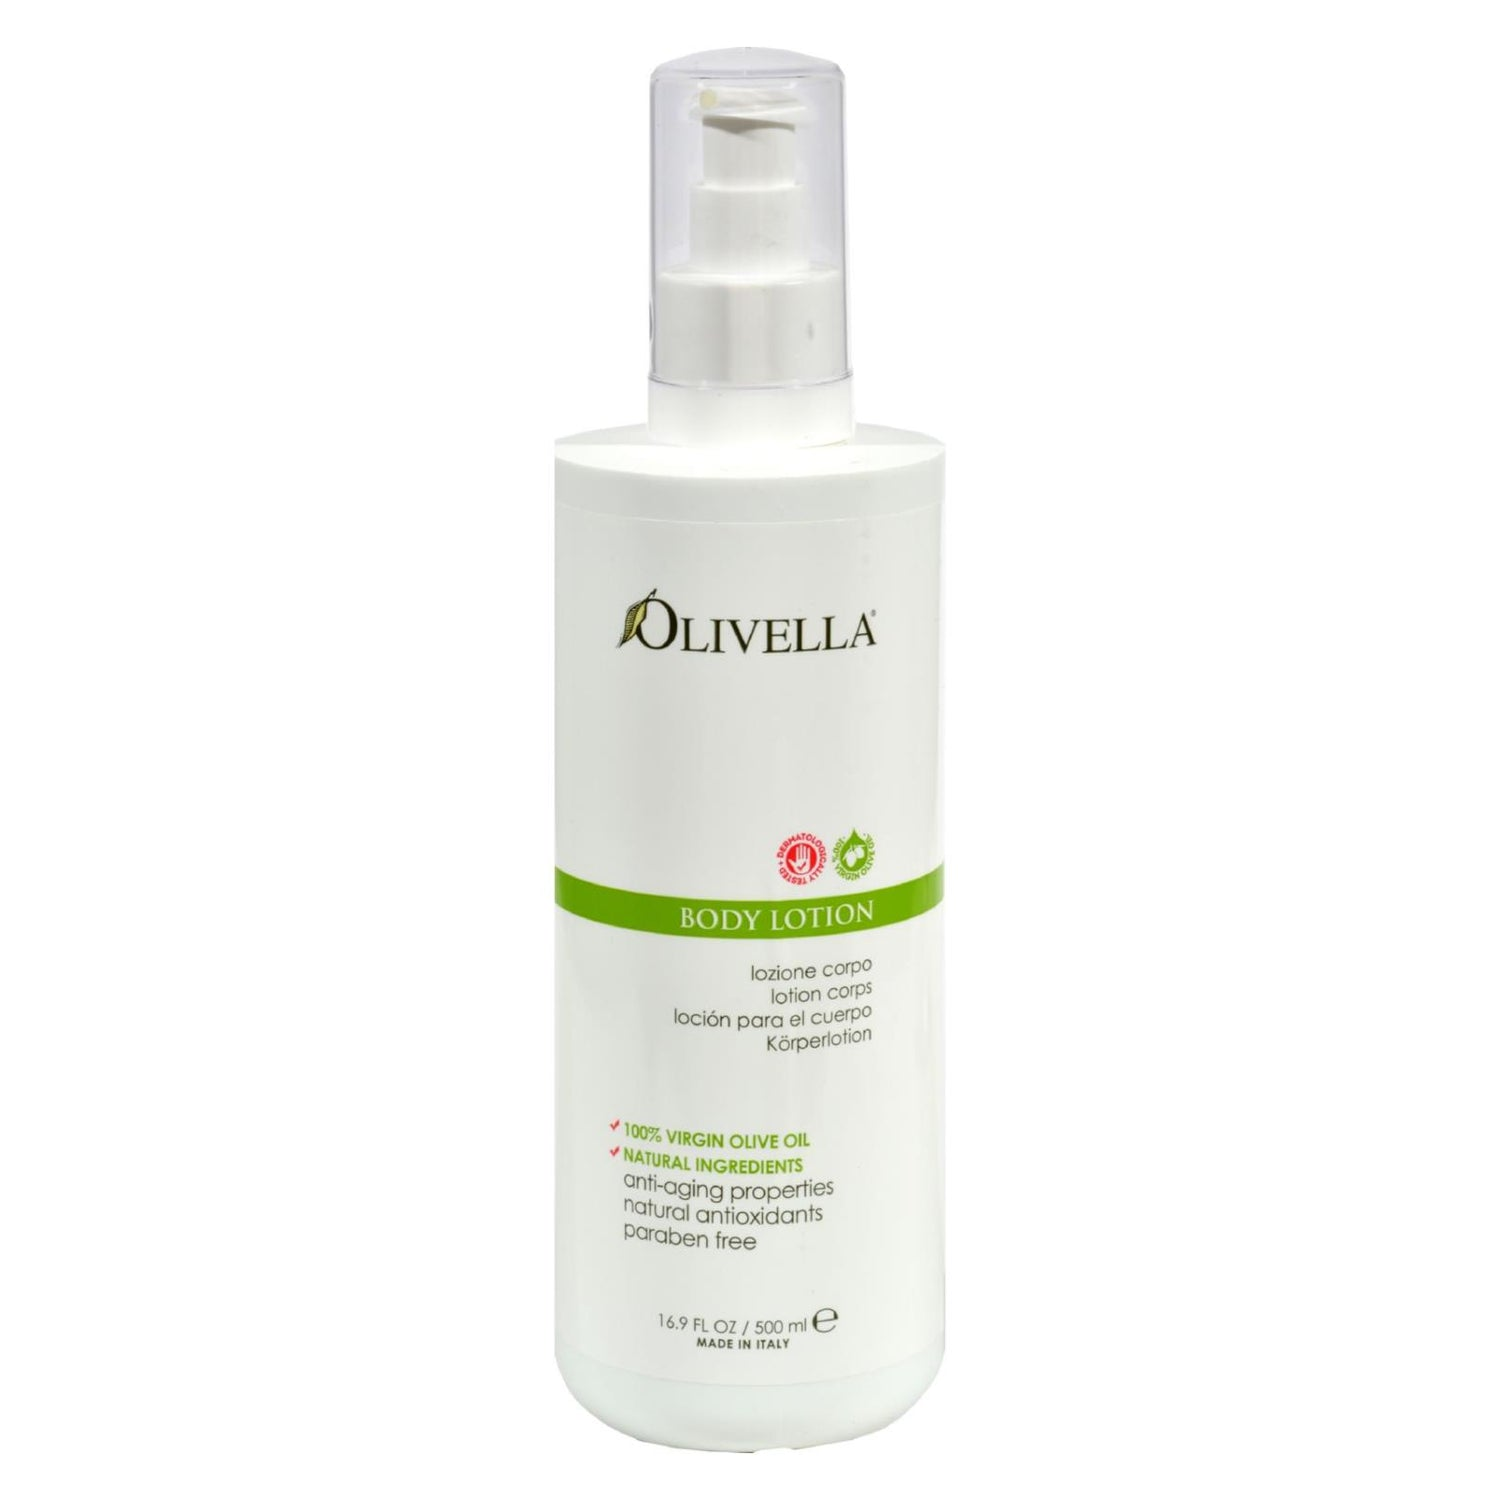 Olivella Body Lotion - 16.9 Fl Oz